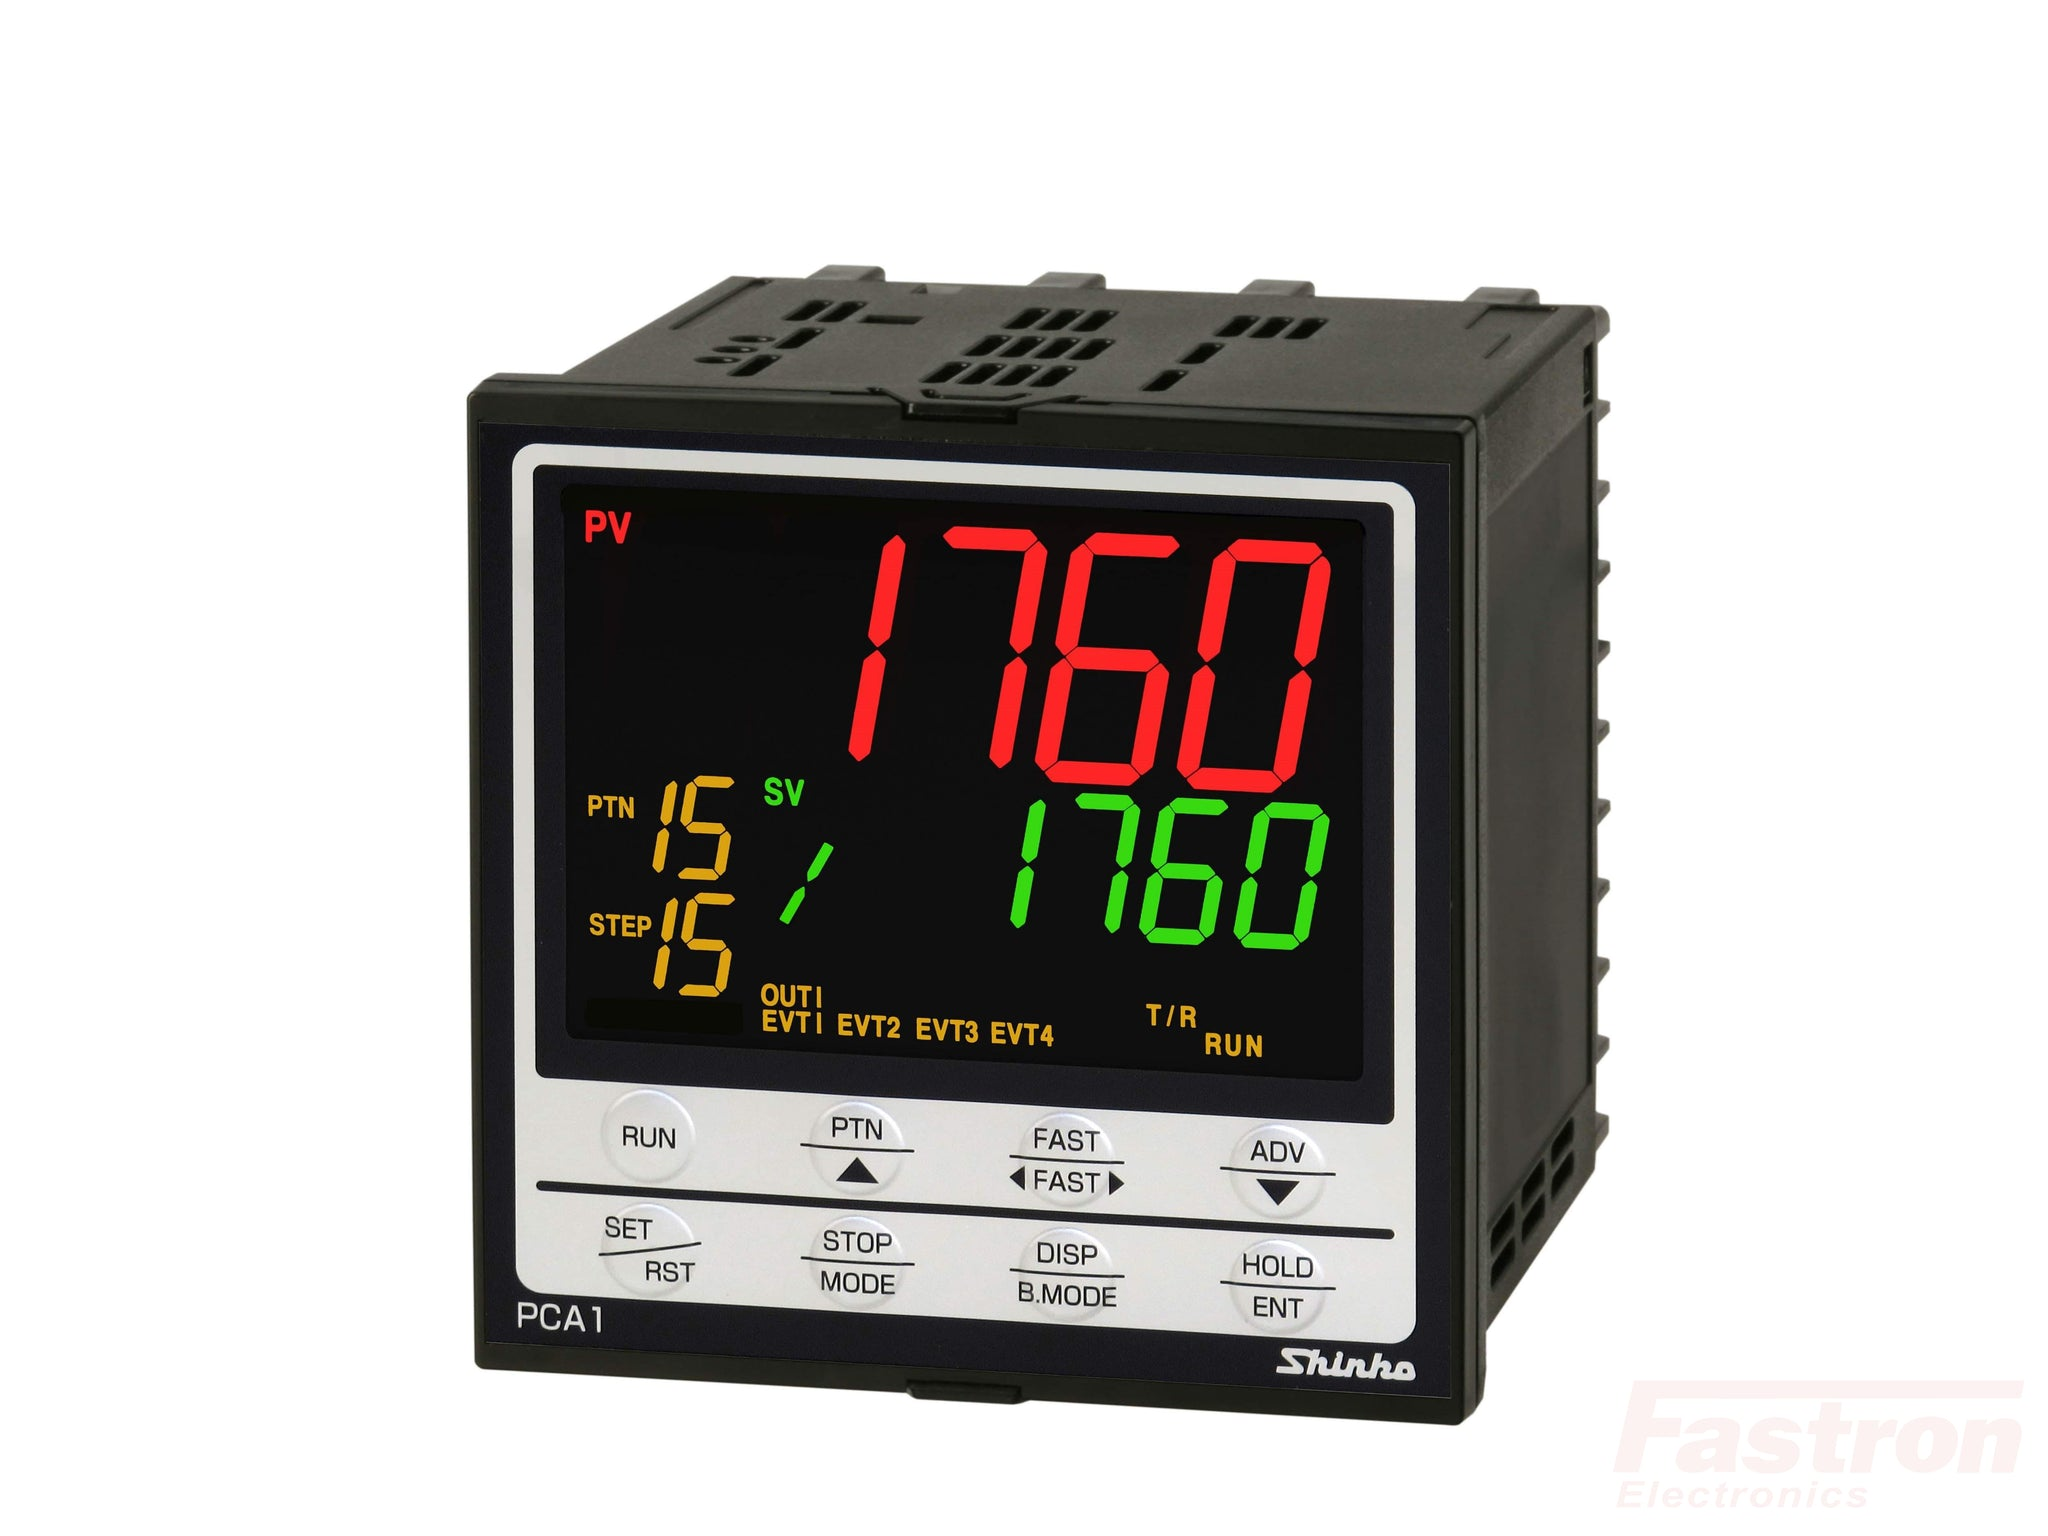 PCA1R00010 Temperature Pattern Controller, 96x96mm, 100-240VAC,Relay output, Retransmission, 16 steps, 16 patterns